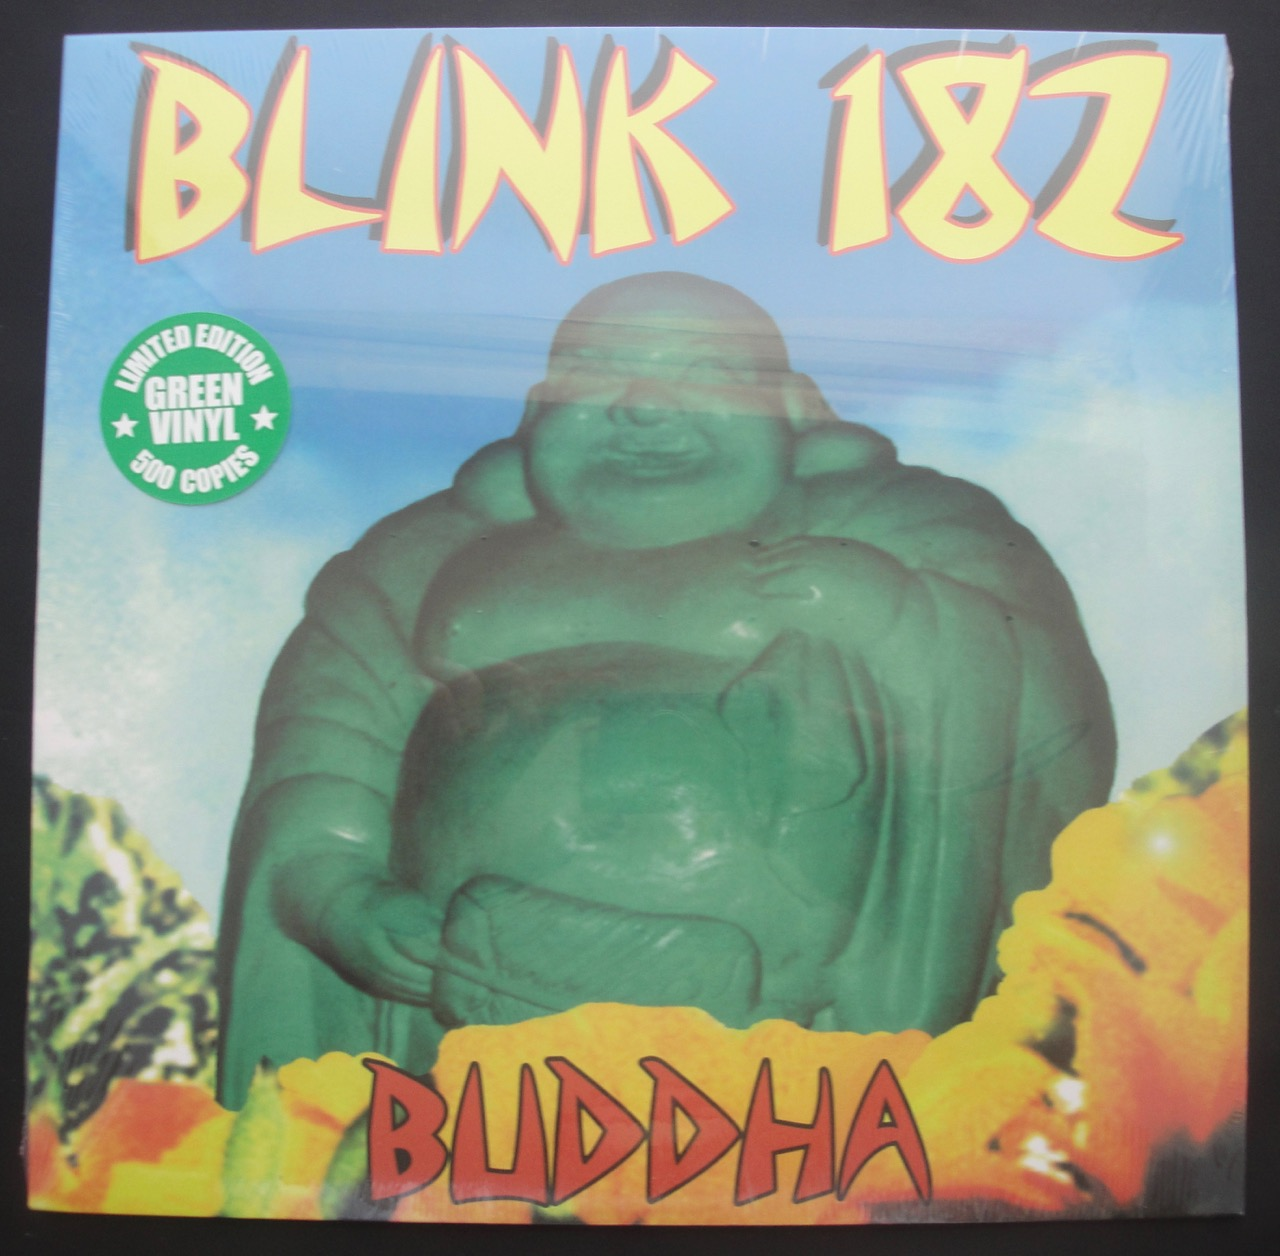 Blink-182 - Buddha - 2018, Limited Edition, Green Colored Vinyl, LP, Kung Fu